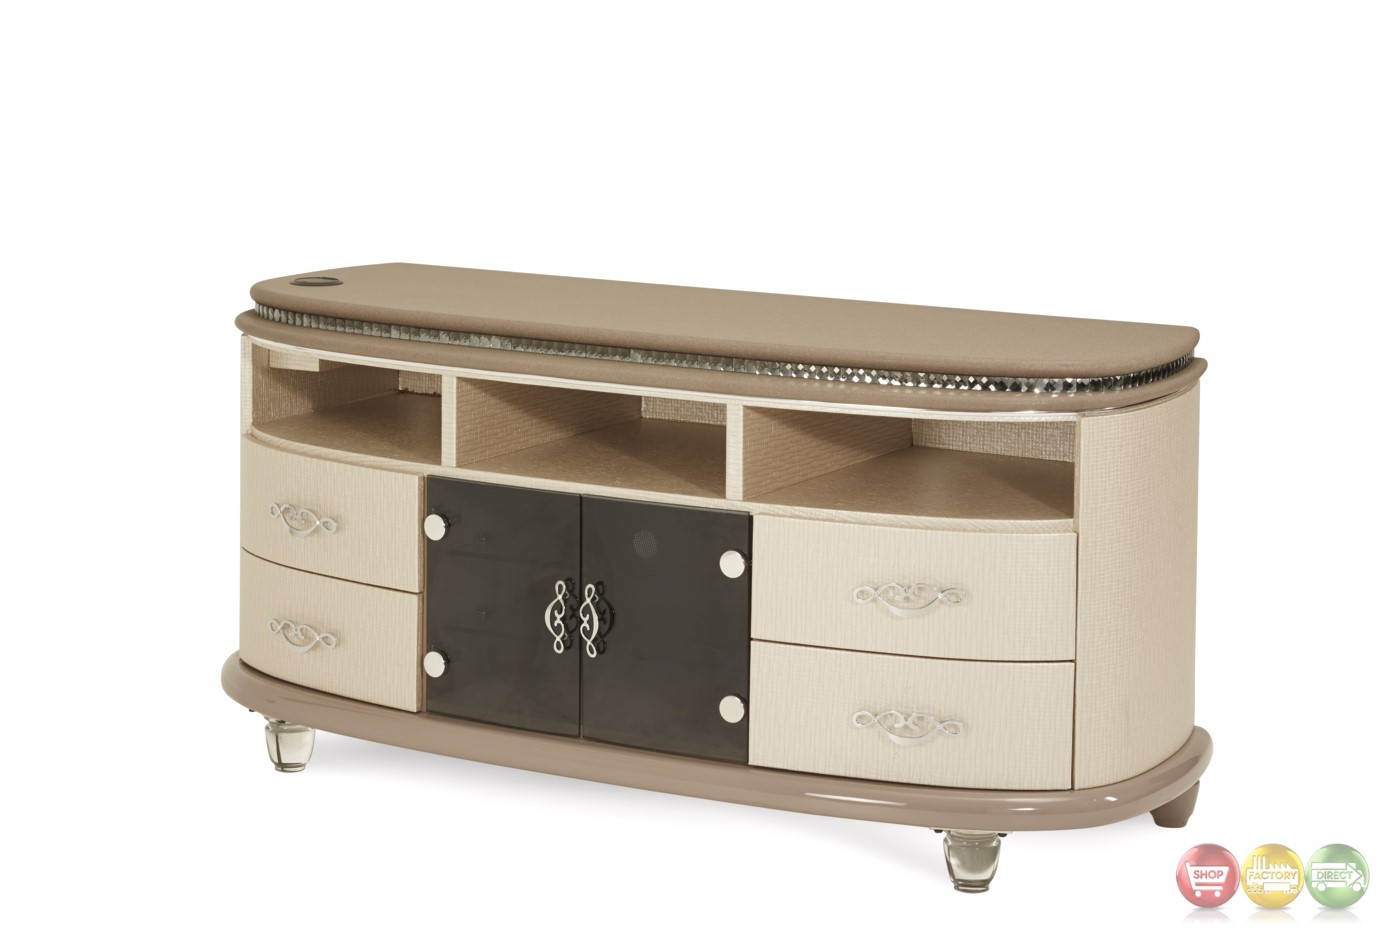 Overture glamour upholstered tv stand in cristal beige for Furniture 08081